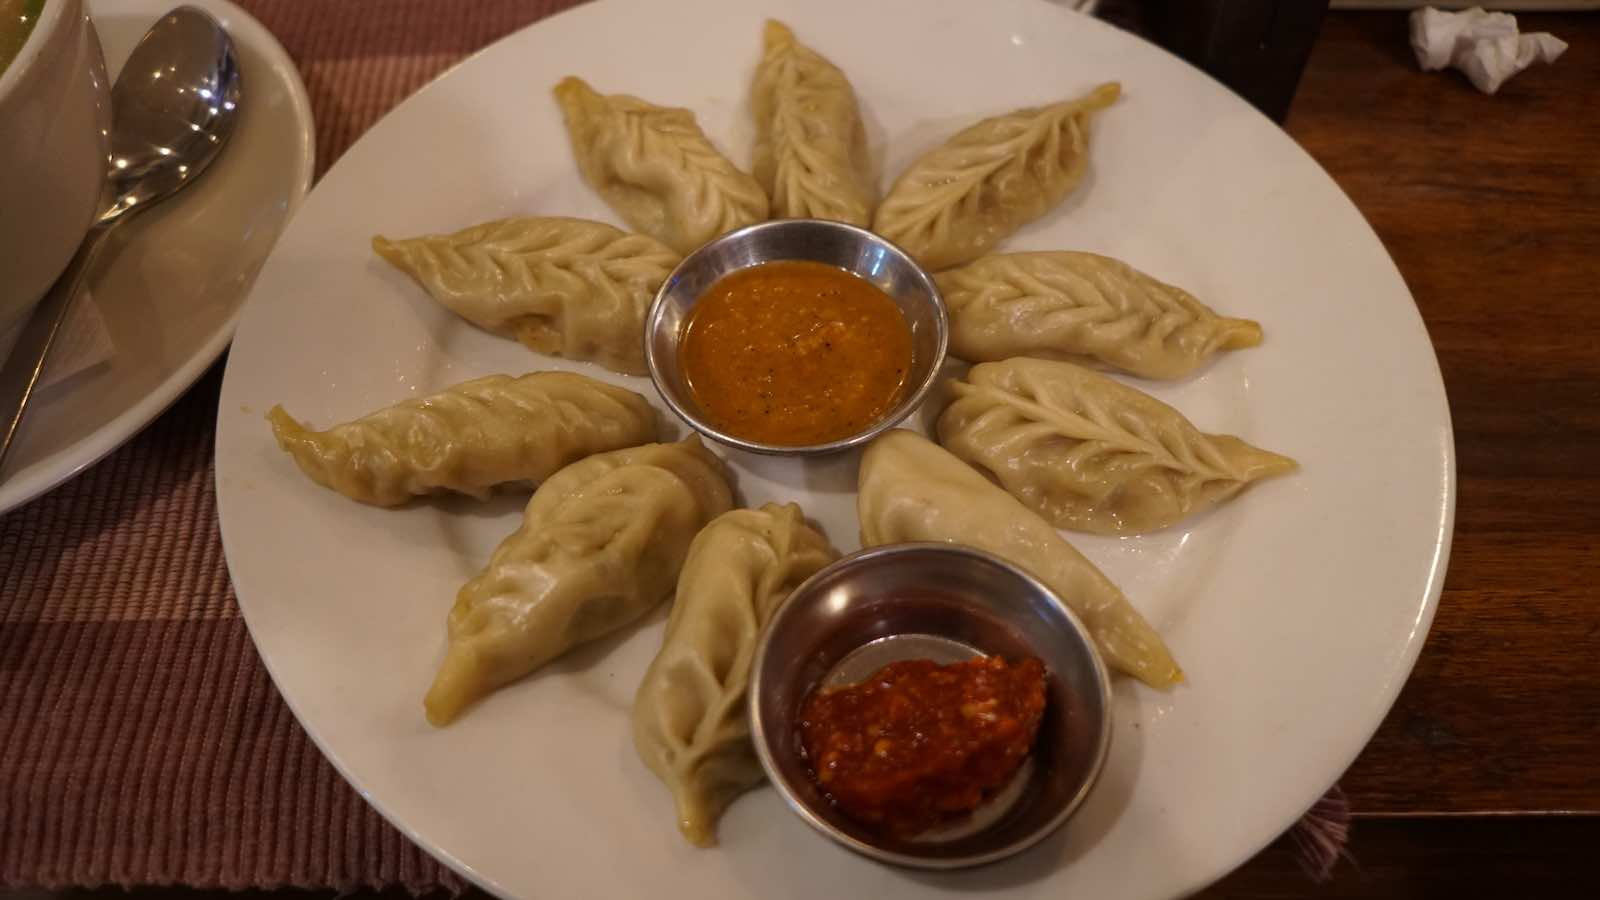 Ate a lot of vegetable momos during my time here, I decided to avoid meat and stick to local foods to lower my chances of food poisoning. These were good and were very similar to the chinese dumplings I am familiar with.